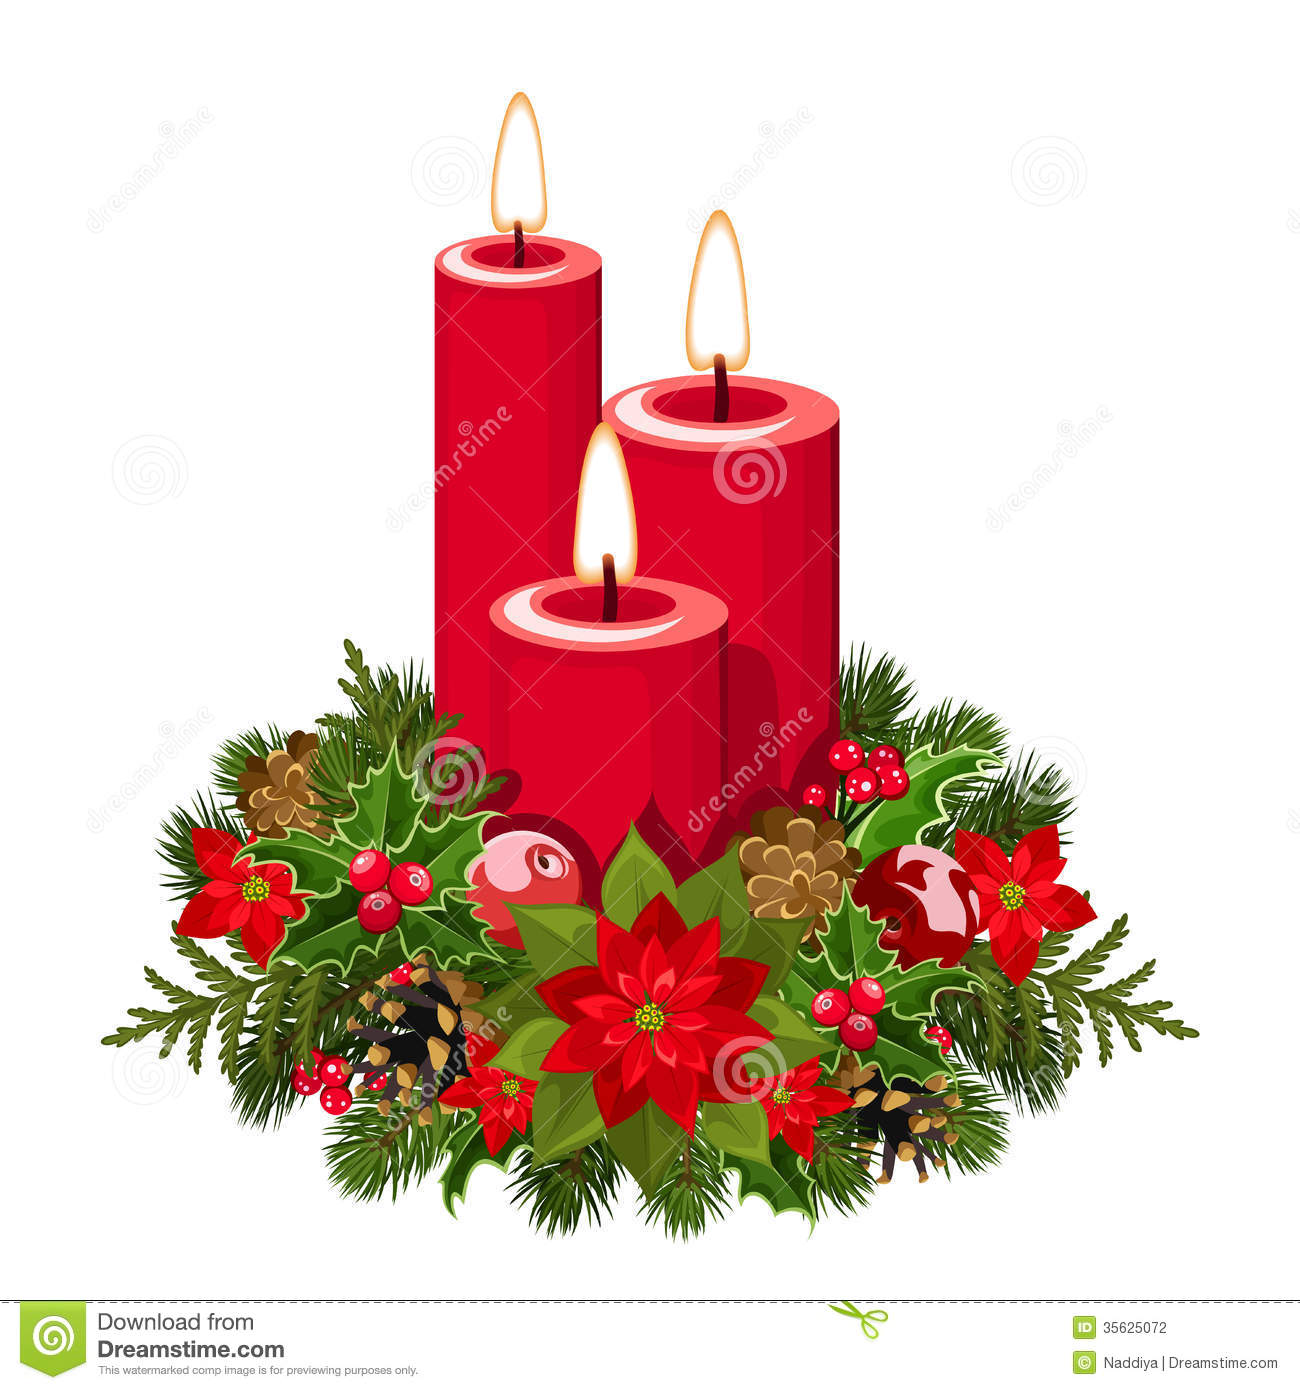 Clipart Candles Christmas.